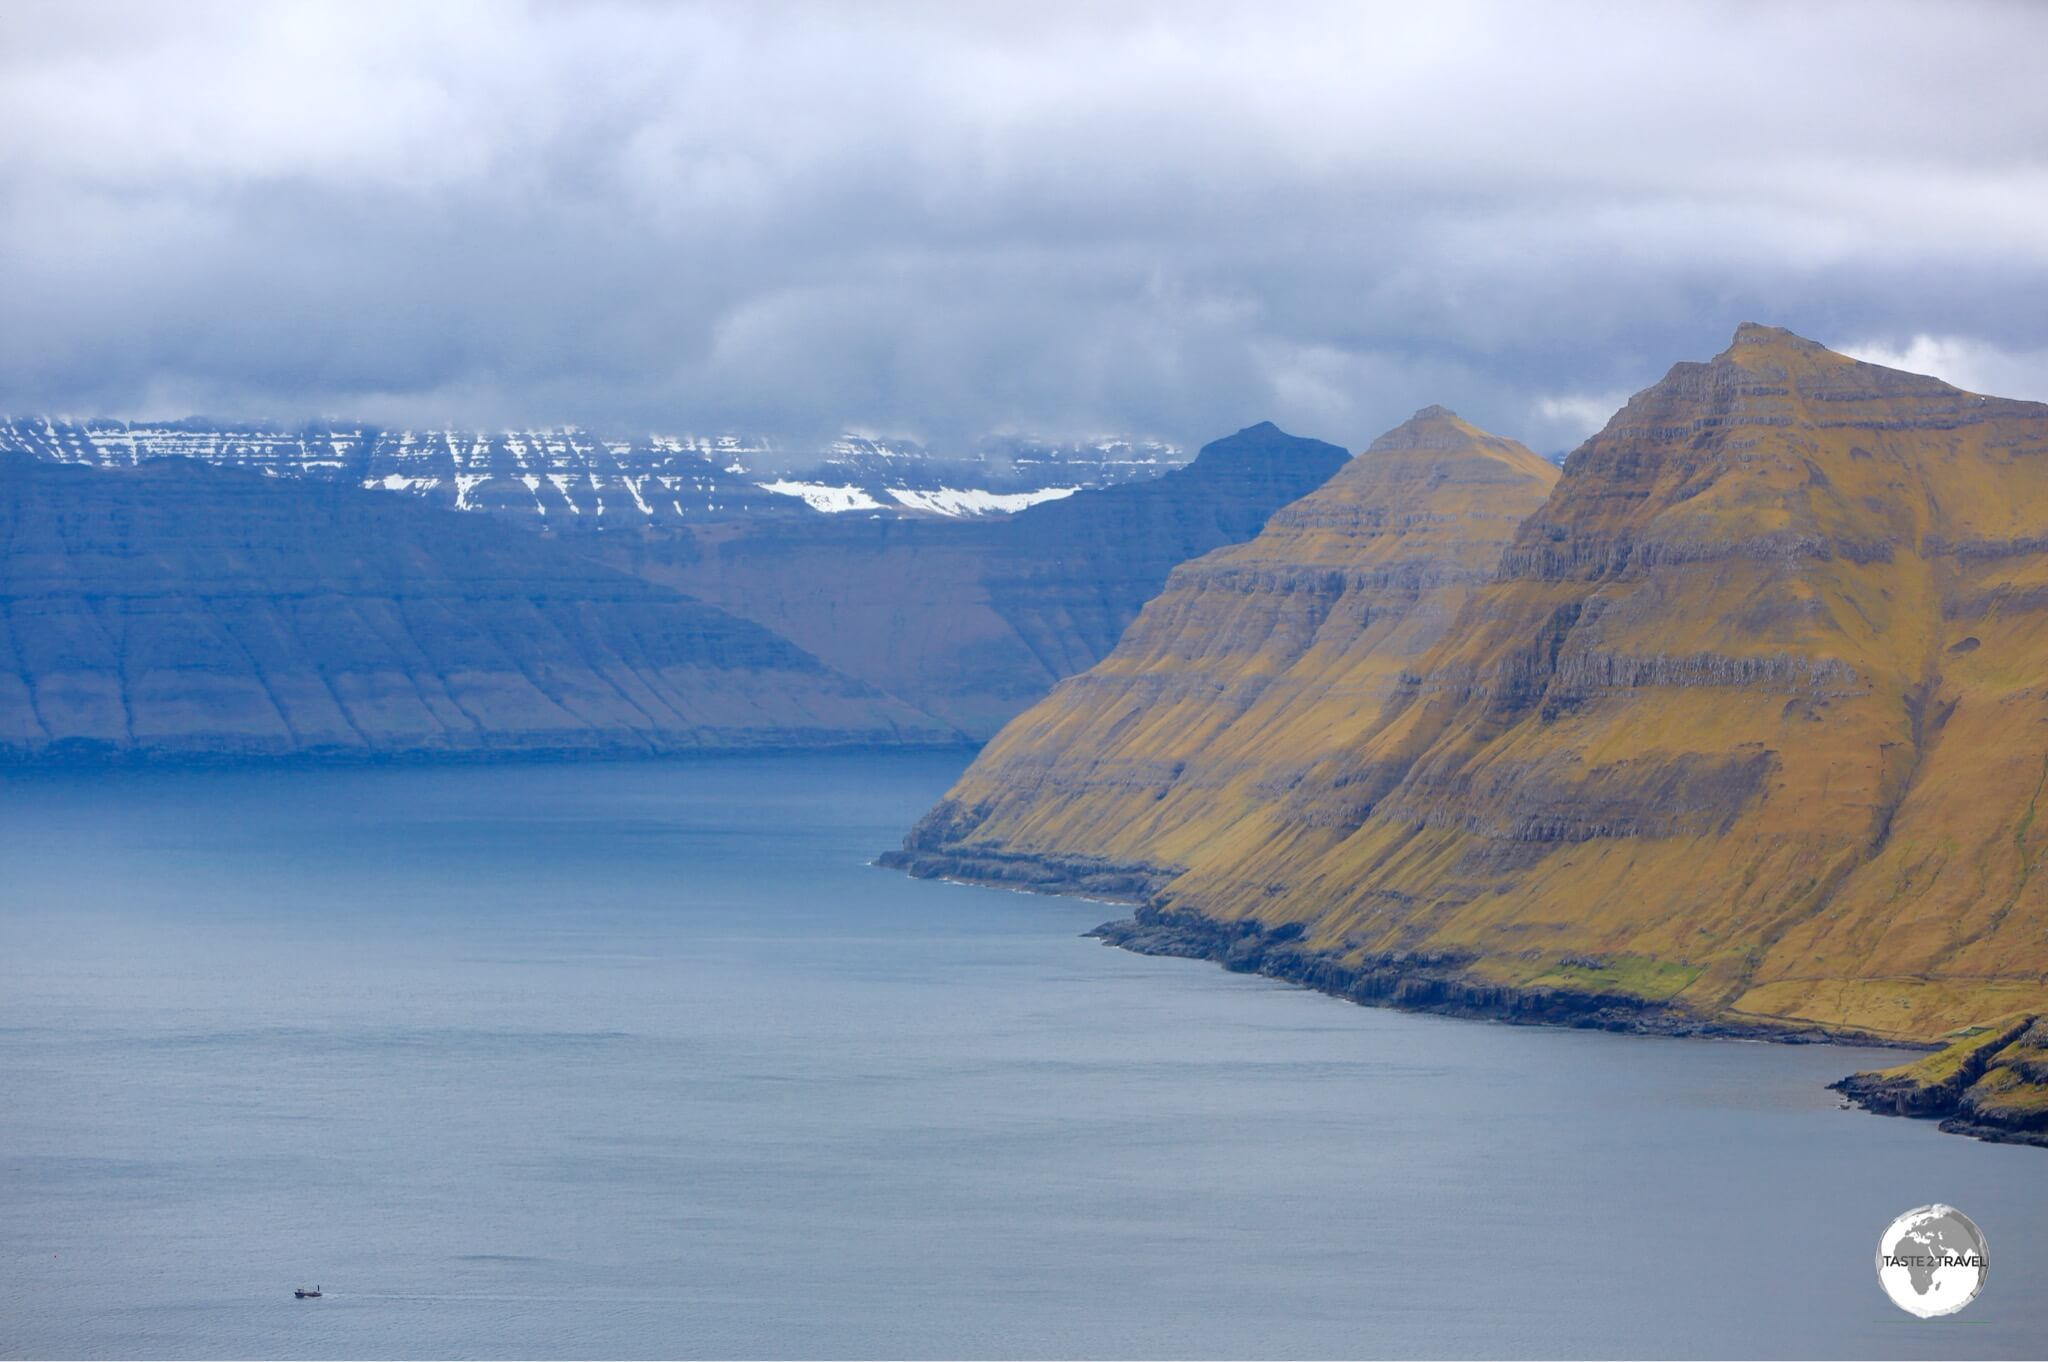 A boat (bottom left) is dwarfed by the towering peaks which surround the Funnings Fjord on Eysturoy Island.